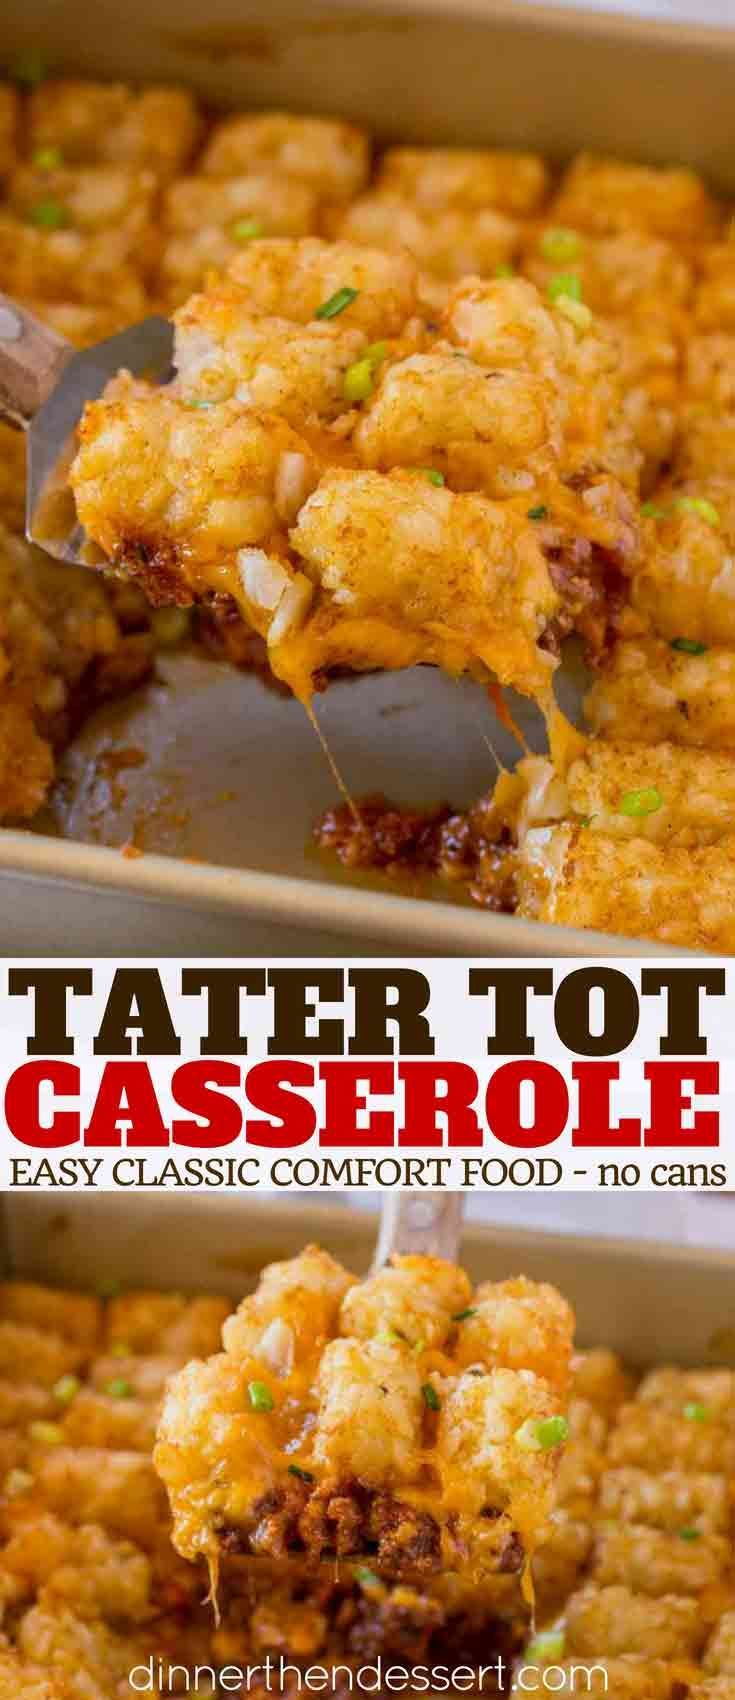 Tater Tot Casserole Made With Ground Beef Tater Tots Cheesy And A Creamy Beef Sauce Topped Beef Recipes Easy Ground Beef Recipes Easy Beef Recipes For Dinner